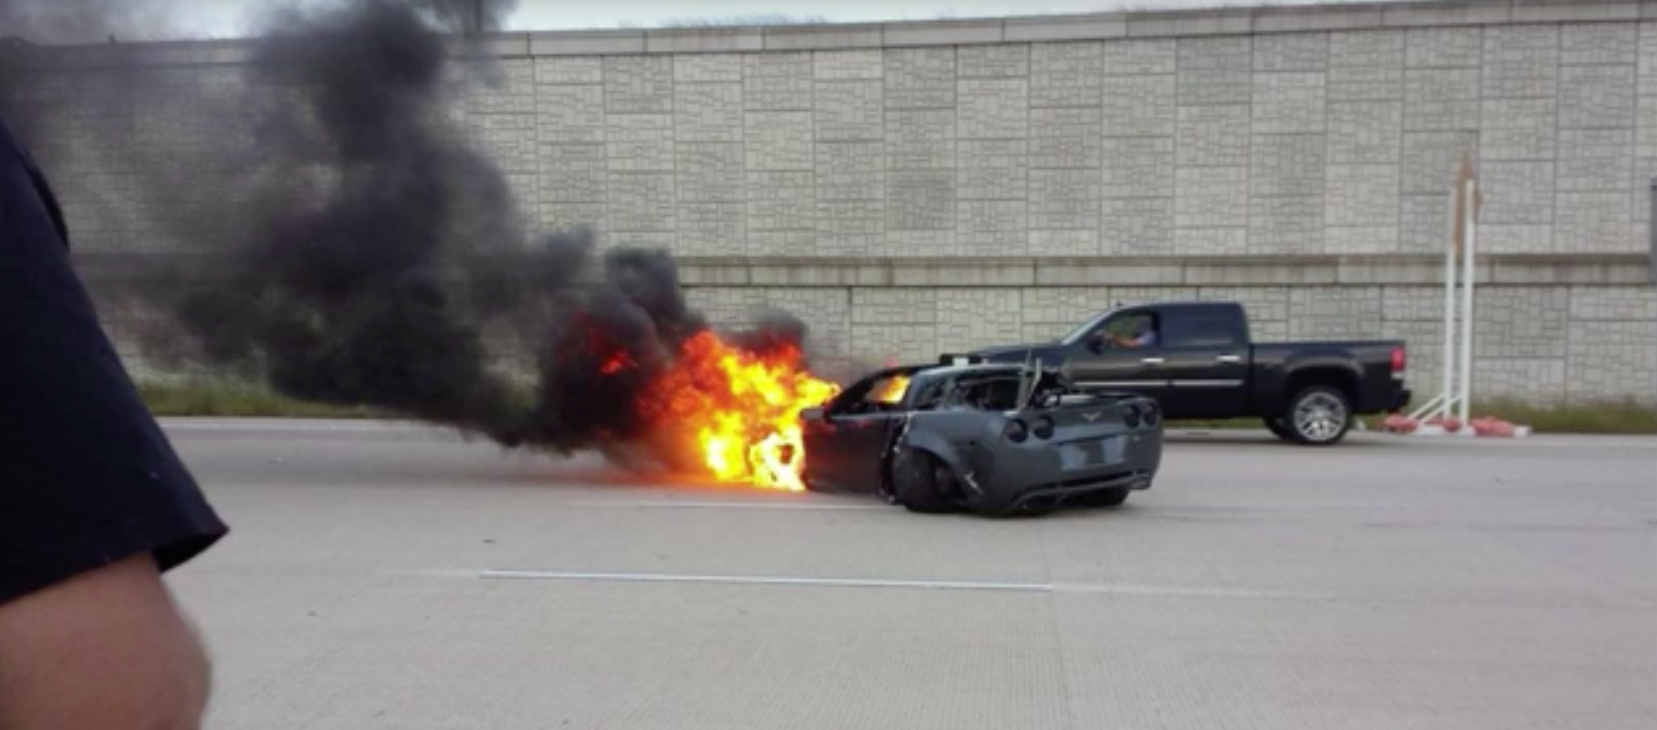 Corvette Becomes V8 Barbecue After 150mph Street Race Goes Badly Wrong